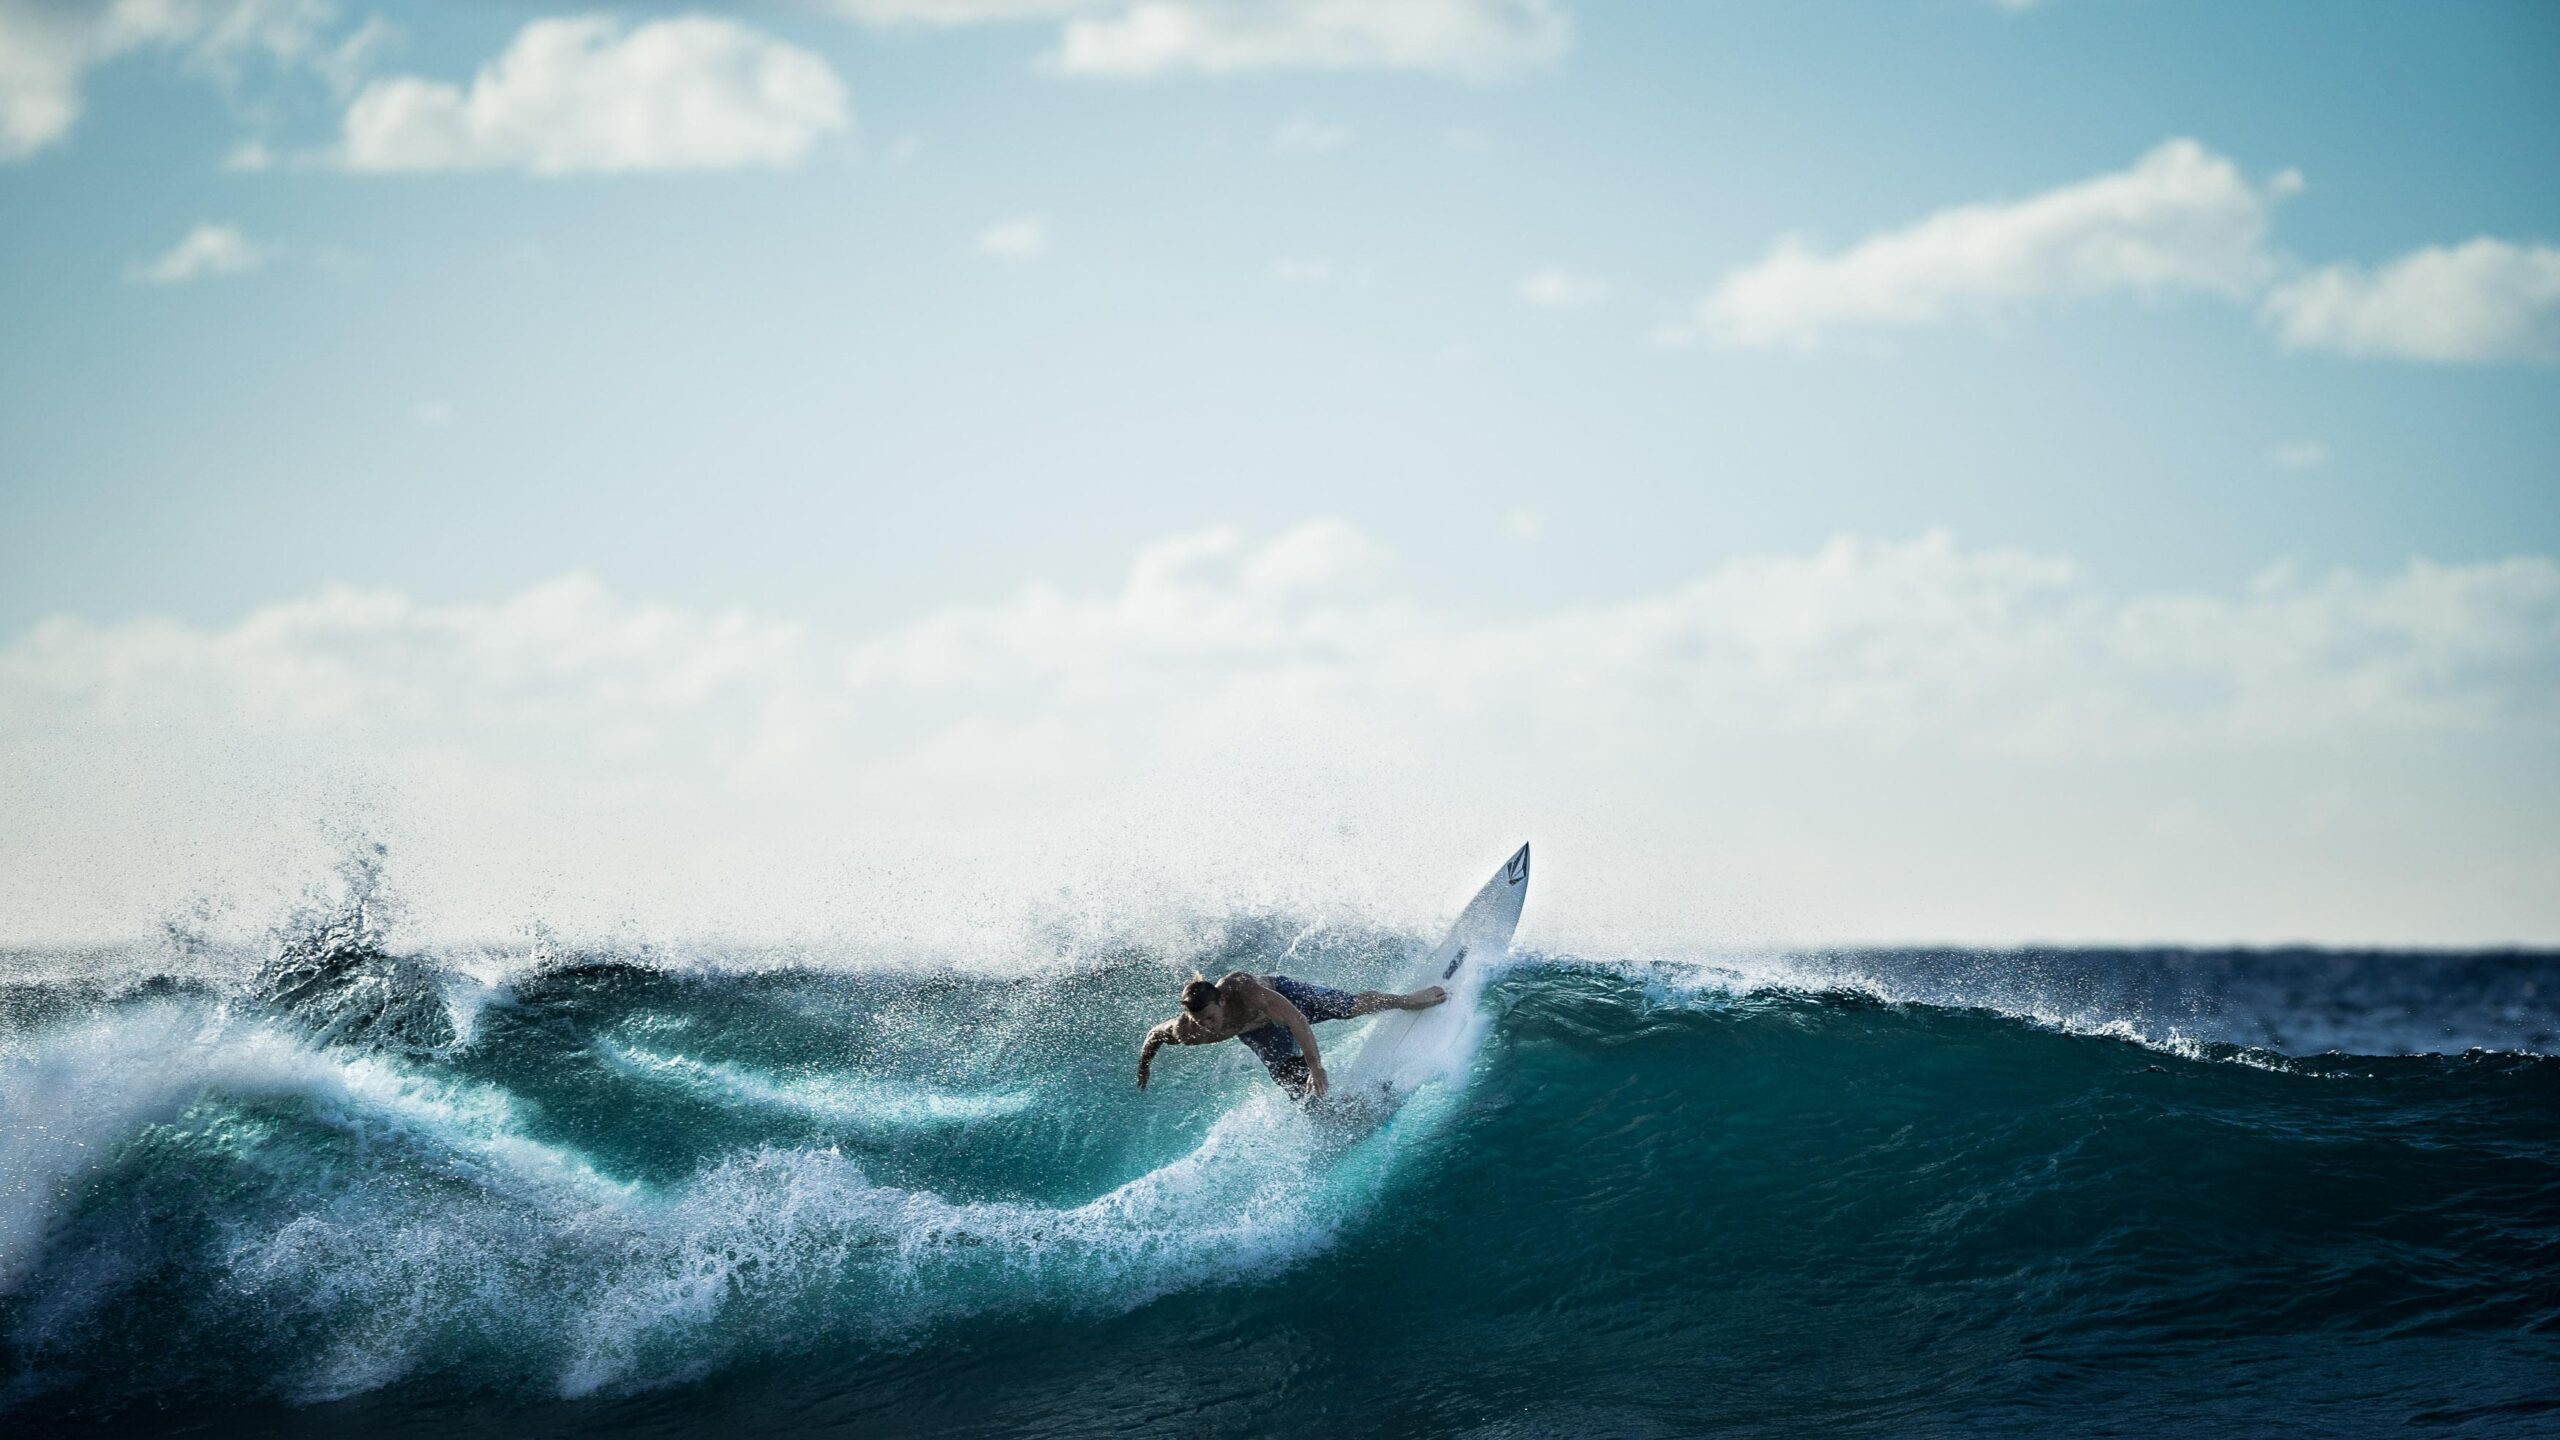 surfing, livestreaming, wave, riding the wave